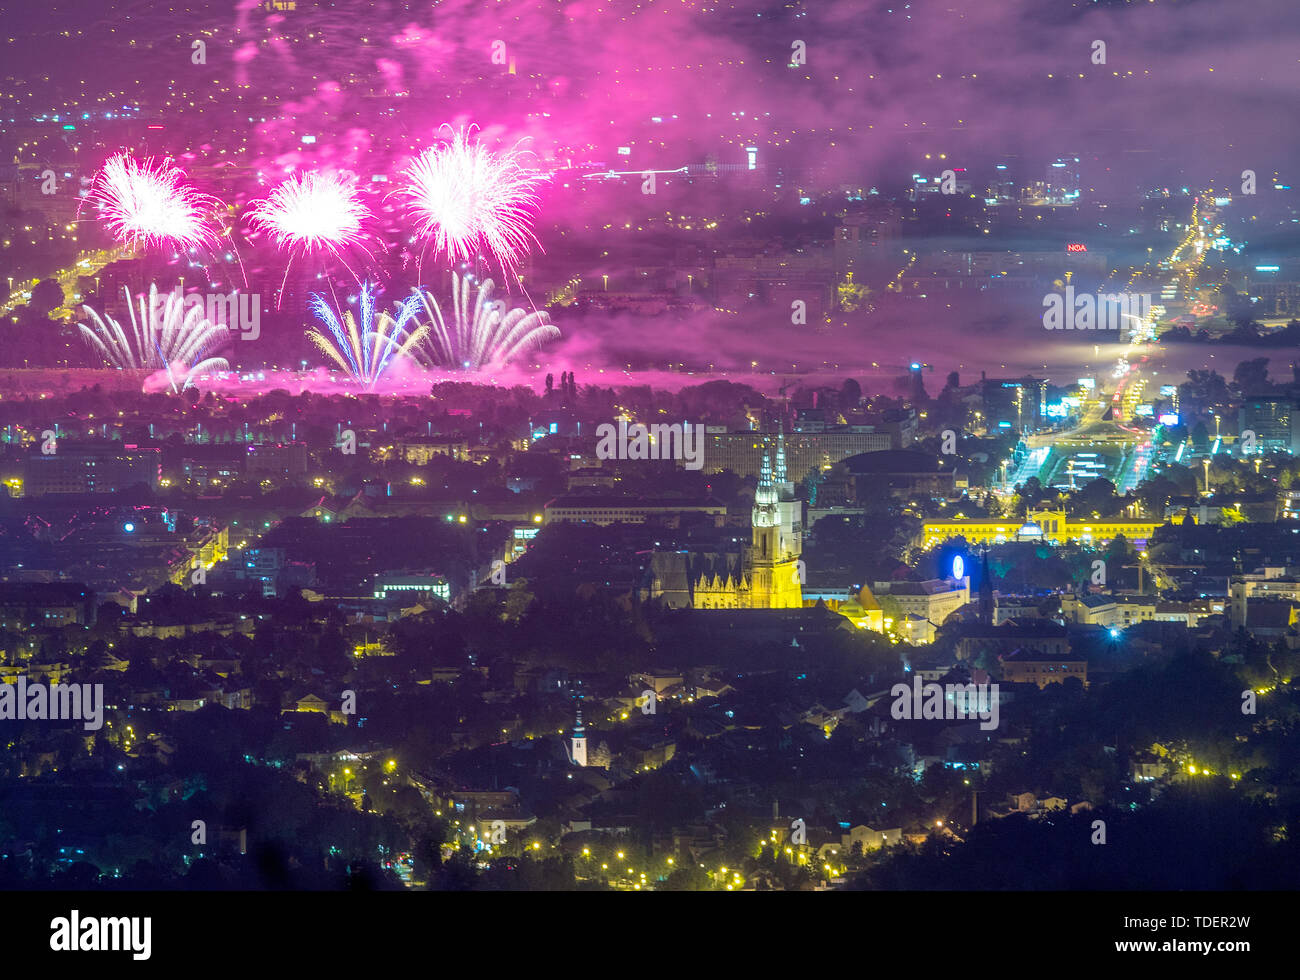 Zagreb. 14th June, 2019. Photo taken on June 14, 2019 shows fireworks during the 19th International Festival of Fireworks in Zagreb, Croatia. Credit: Igor Kralj/Xinhua/Alamy Live News Stock Photo